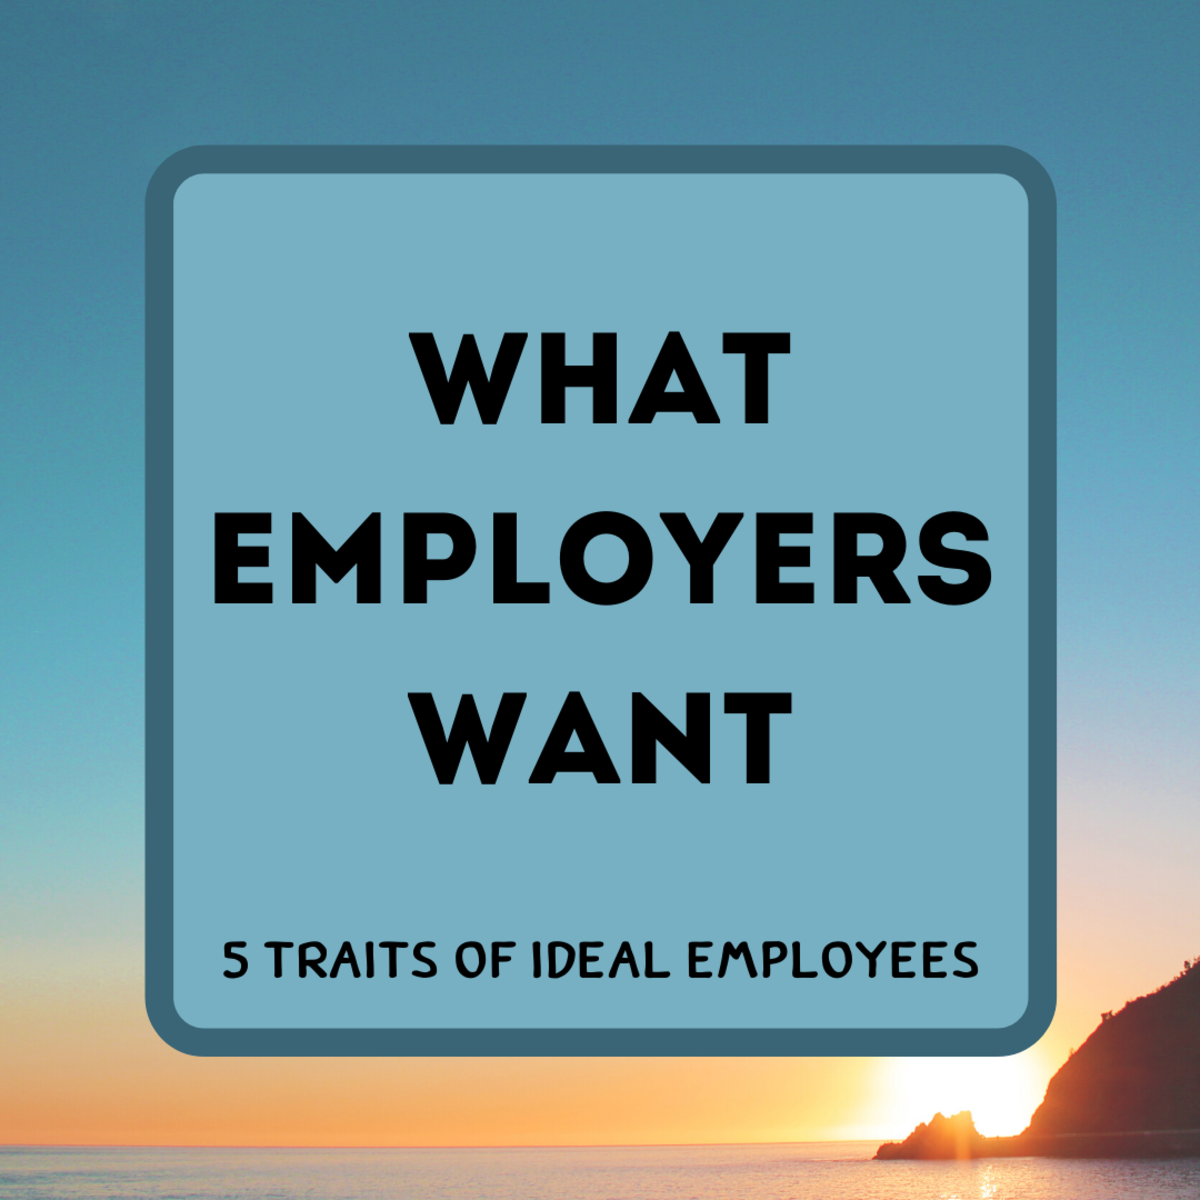 Learn about some of the in-demand characteristics that employers are seeking in their employees.